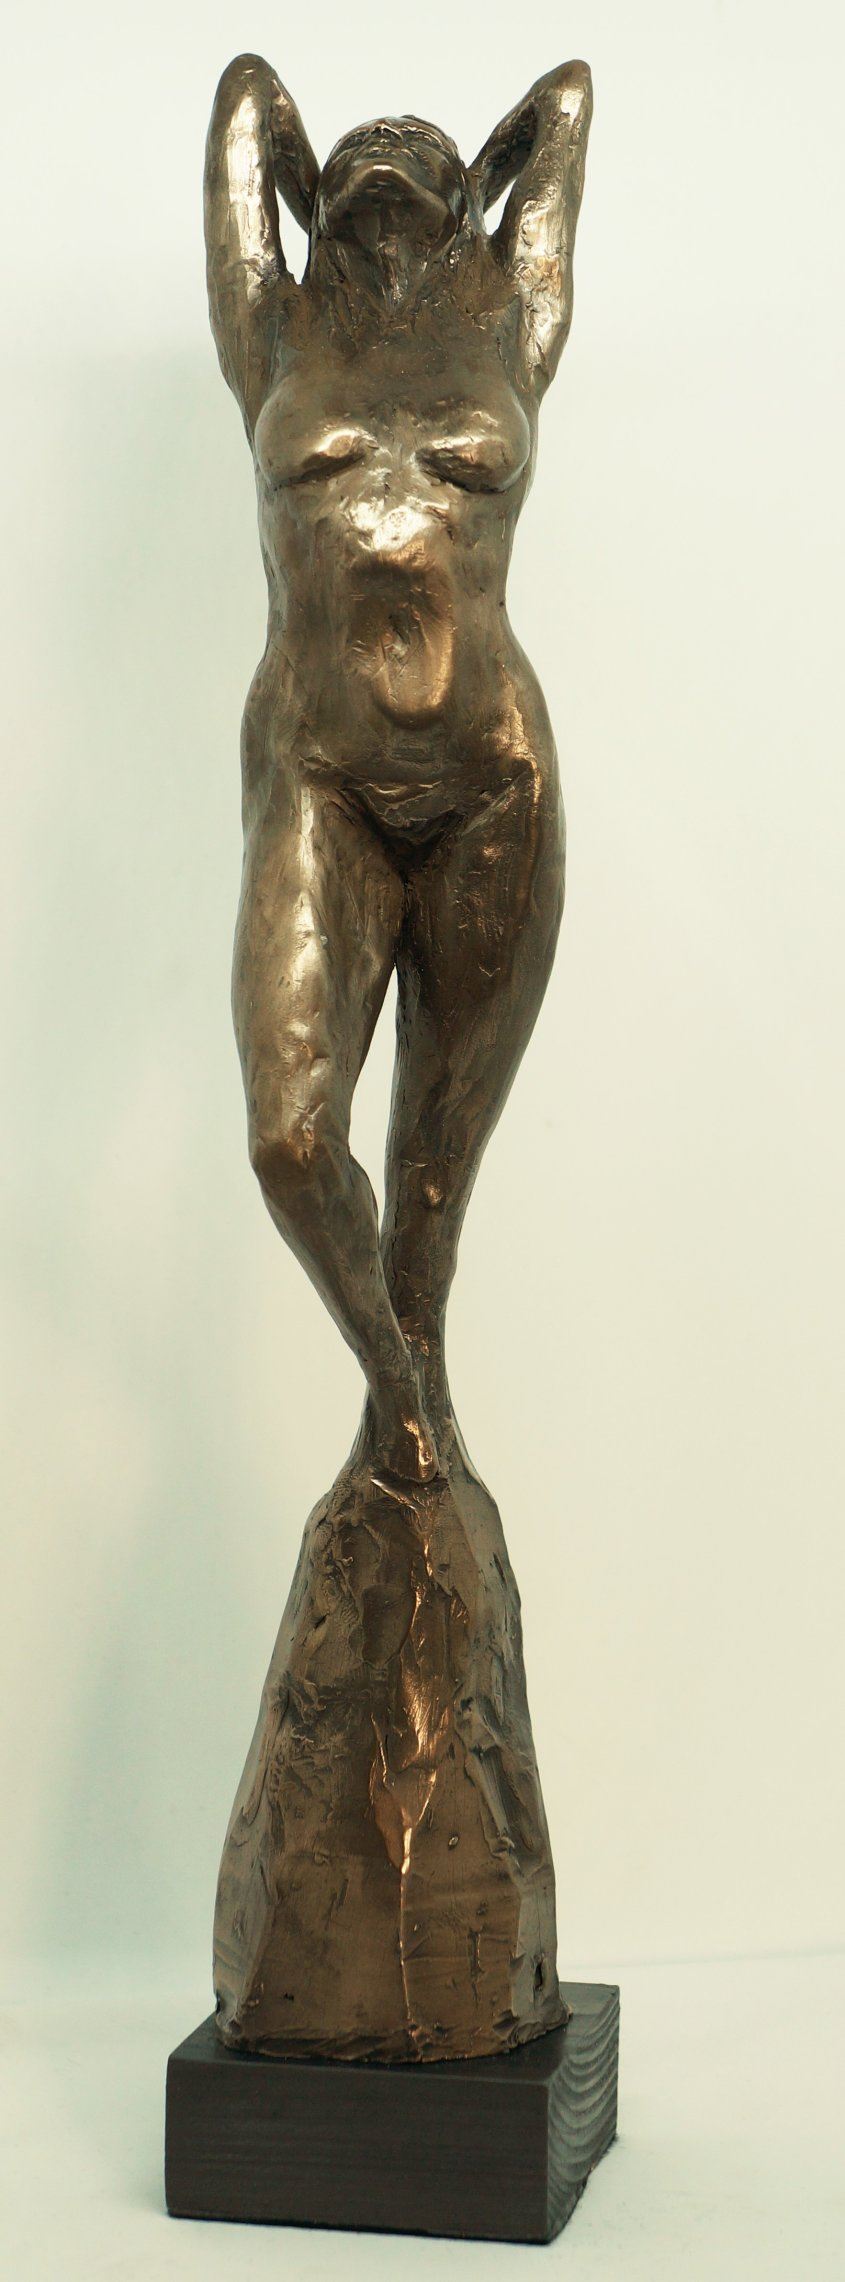 Aphrodite, cold cast bronze, 38cm tall - £95